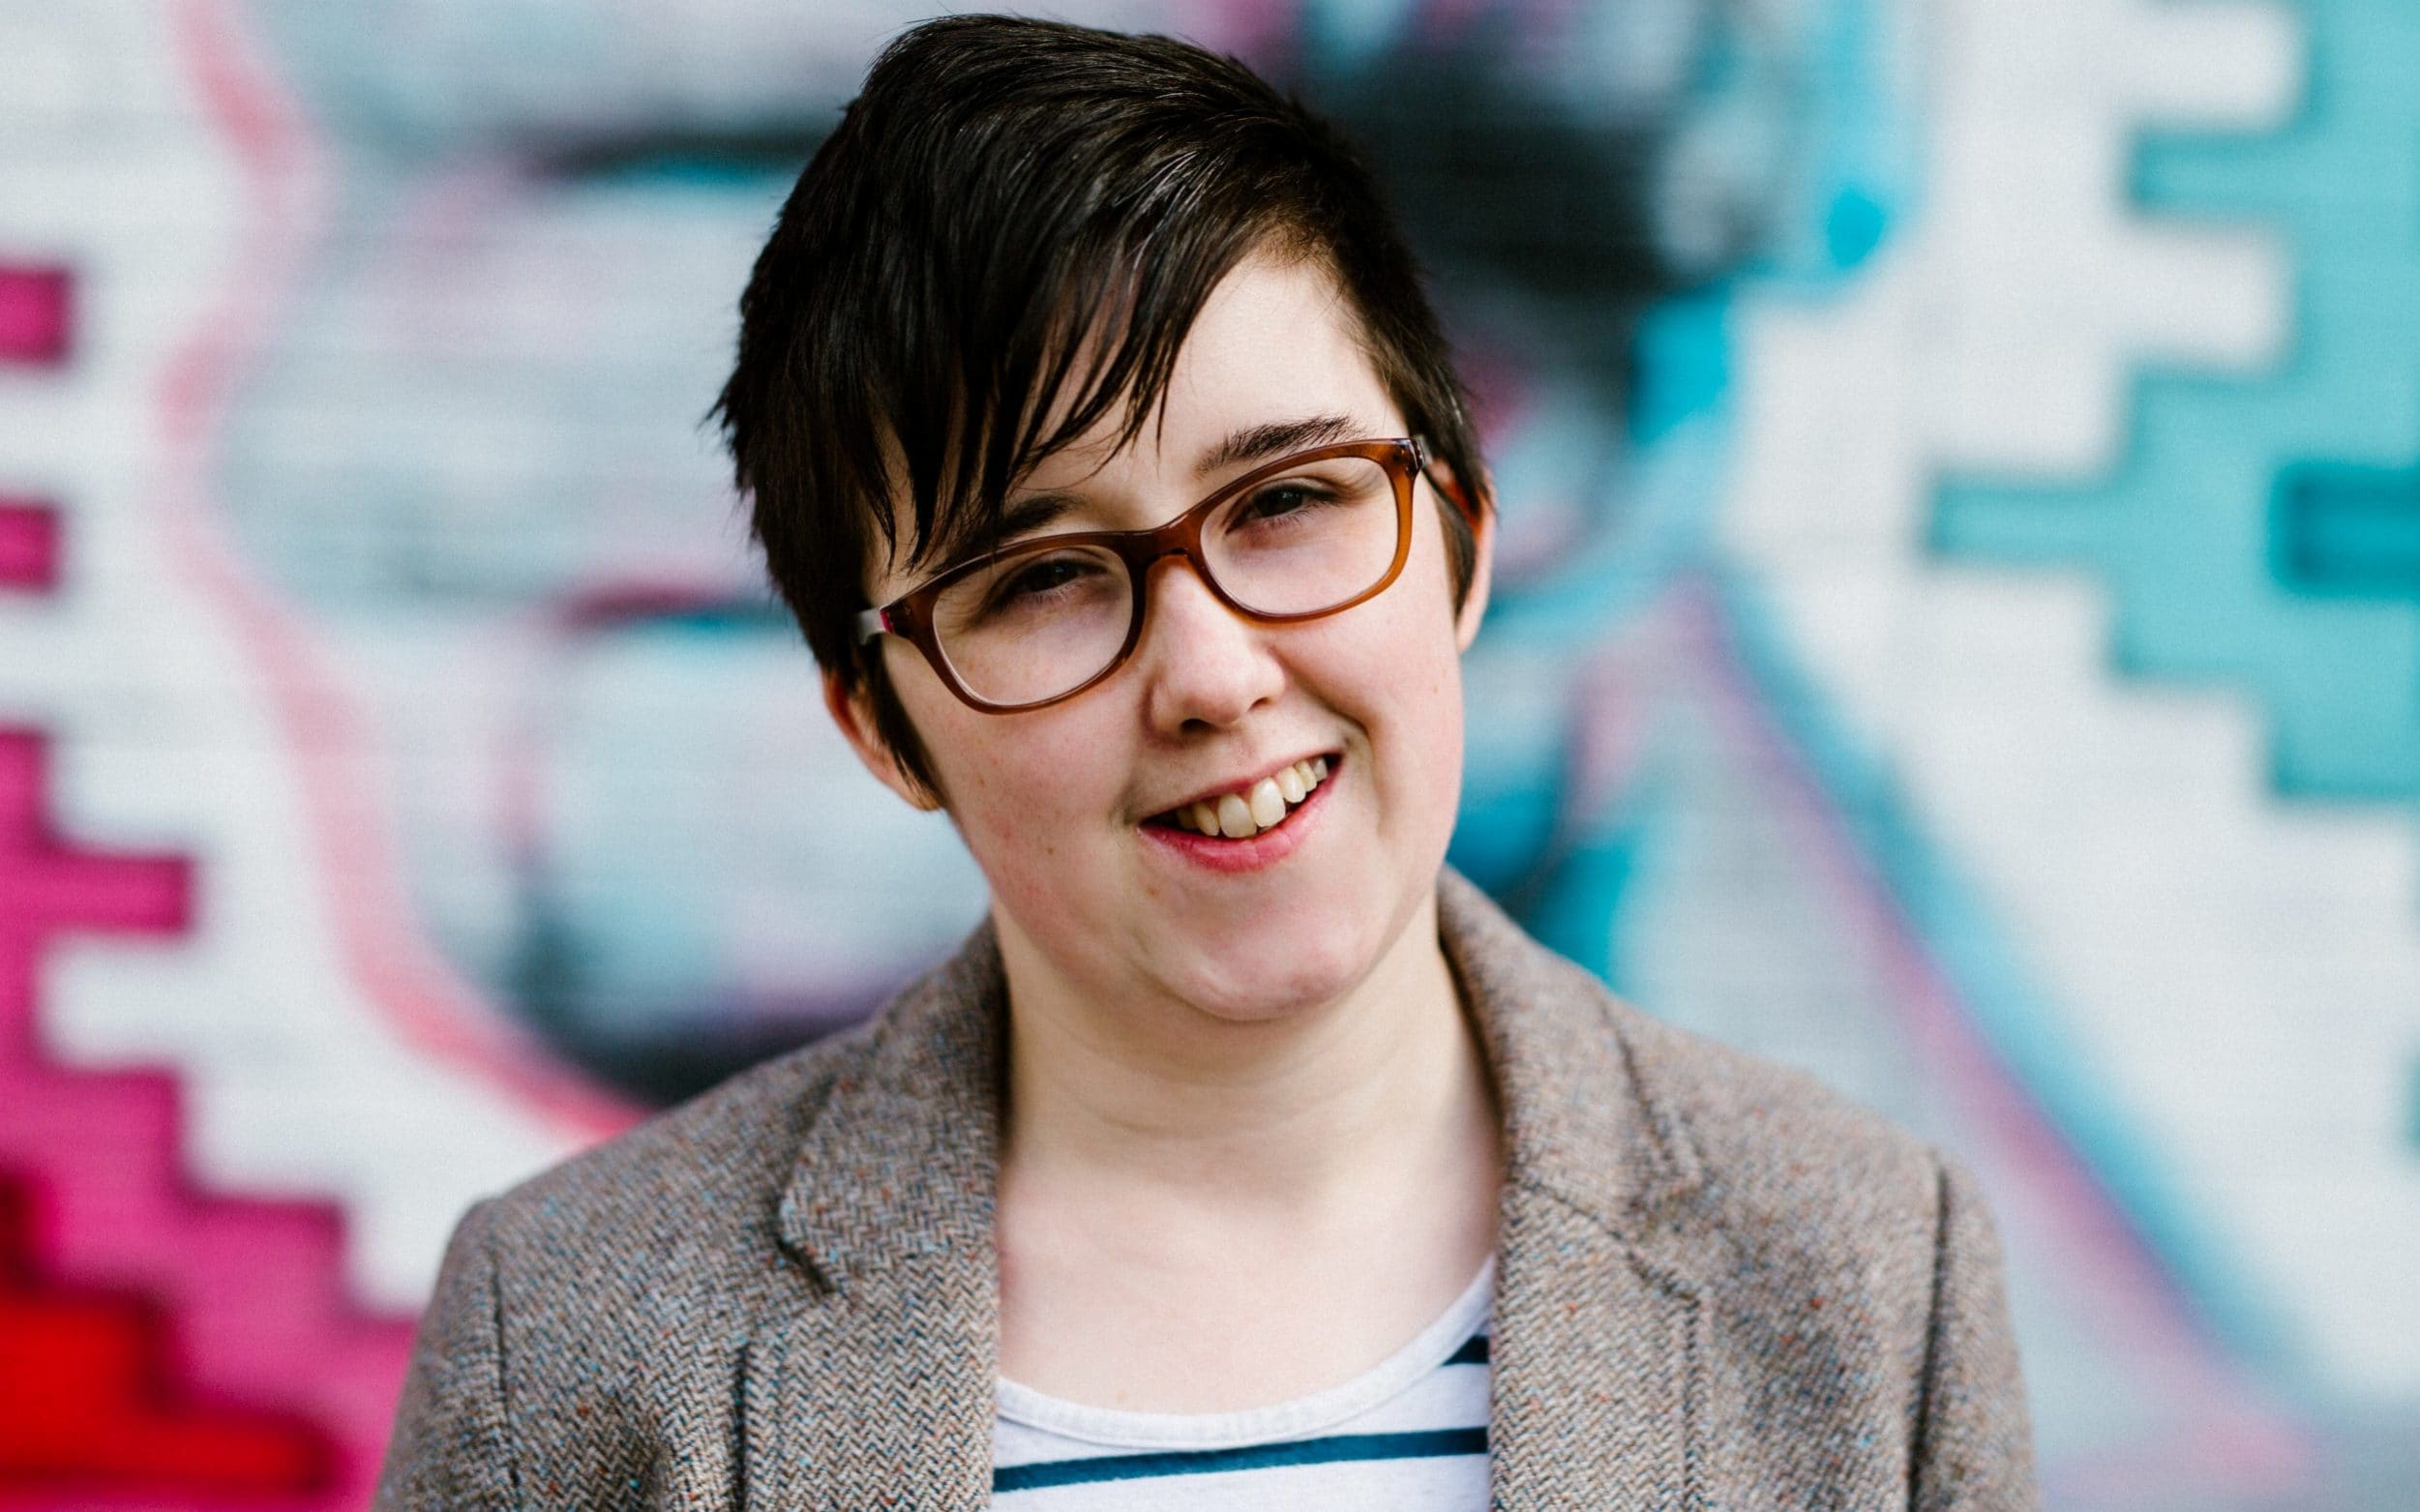 Four men arrested in connection with murder of journalist Lyra McKee